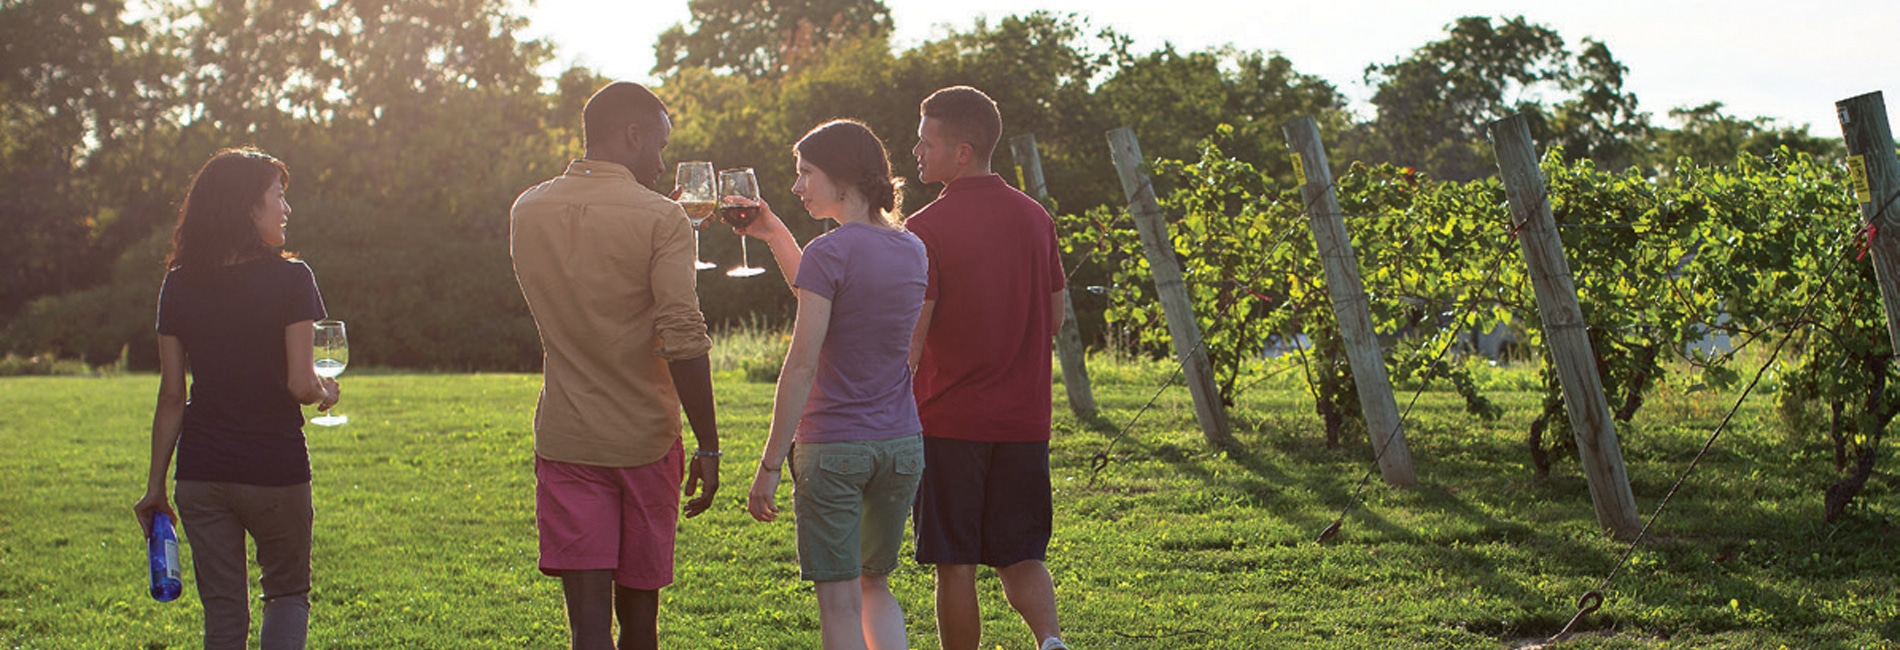 Niagara Wine Trail - Grant Taylor Photography, Inc